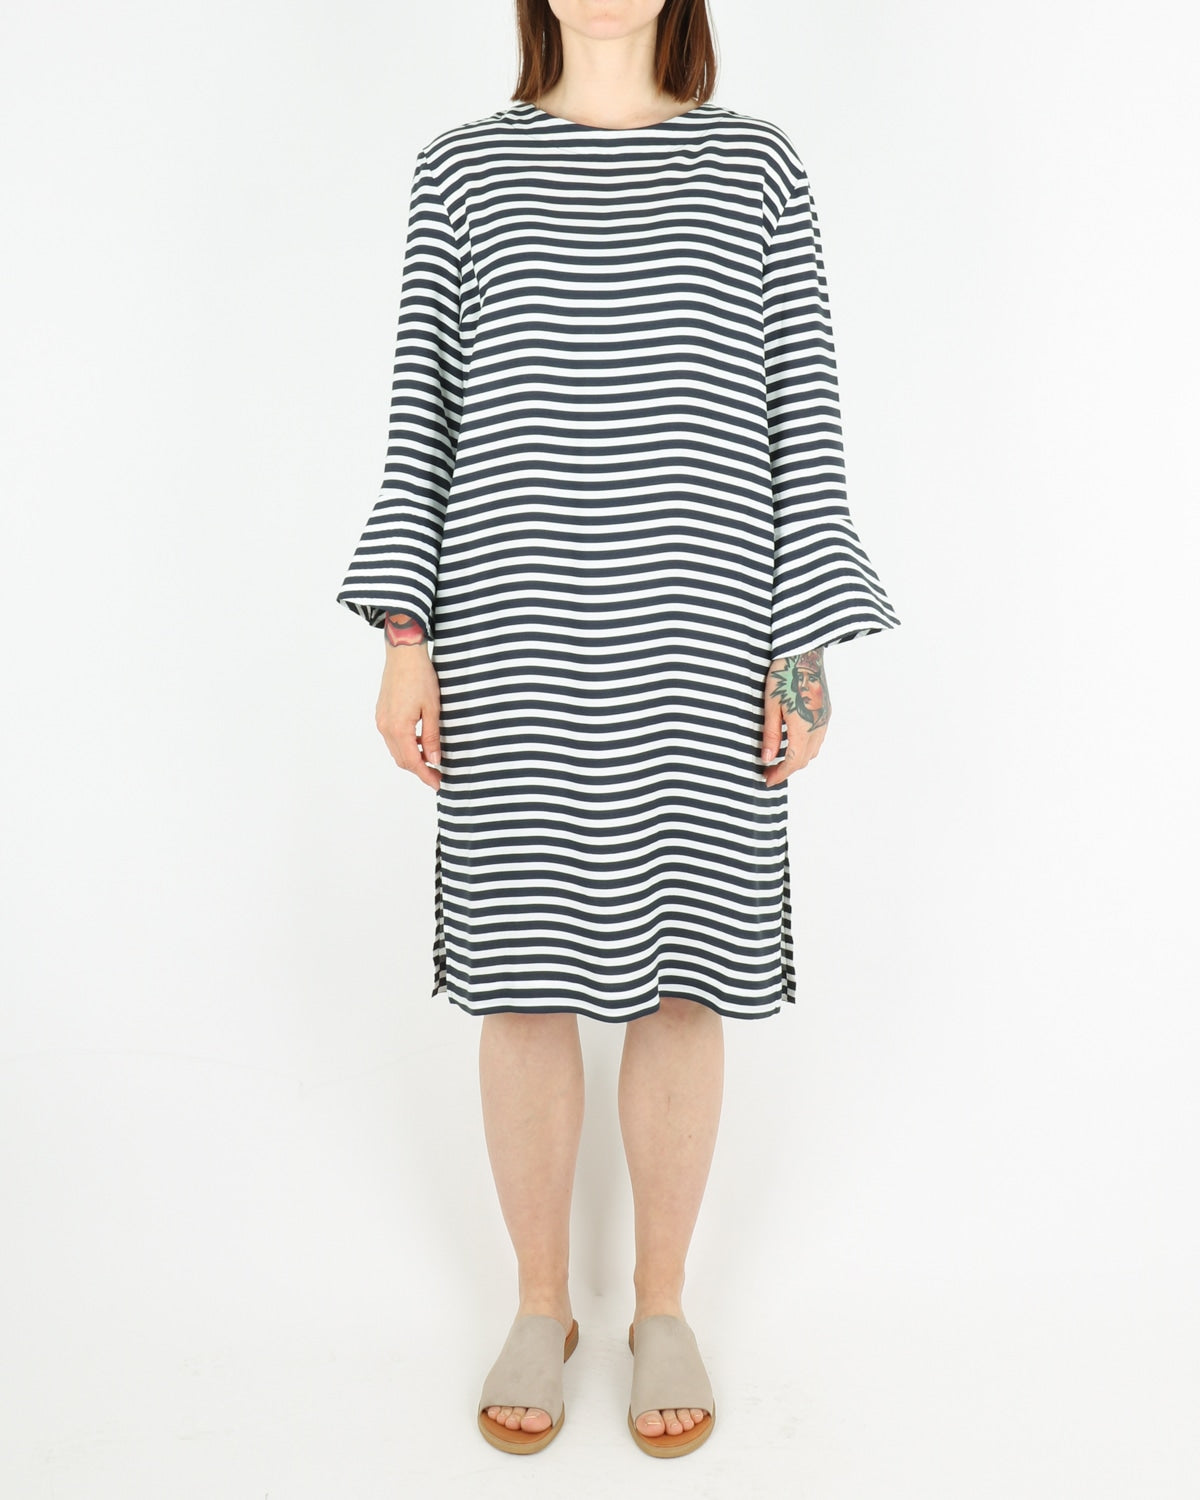 libertine libertine_glaze dress_navy white_view_1_3